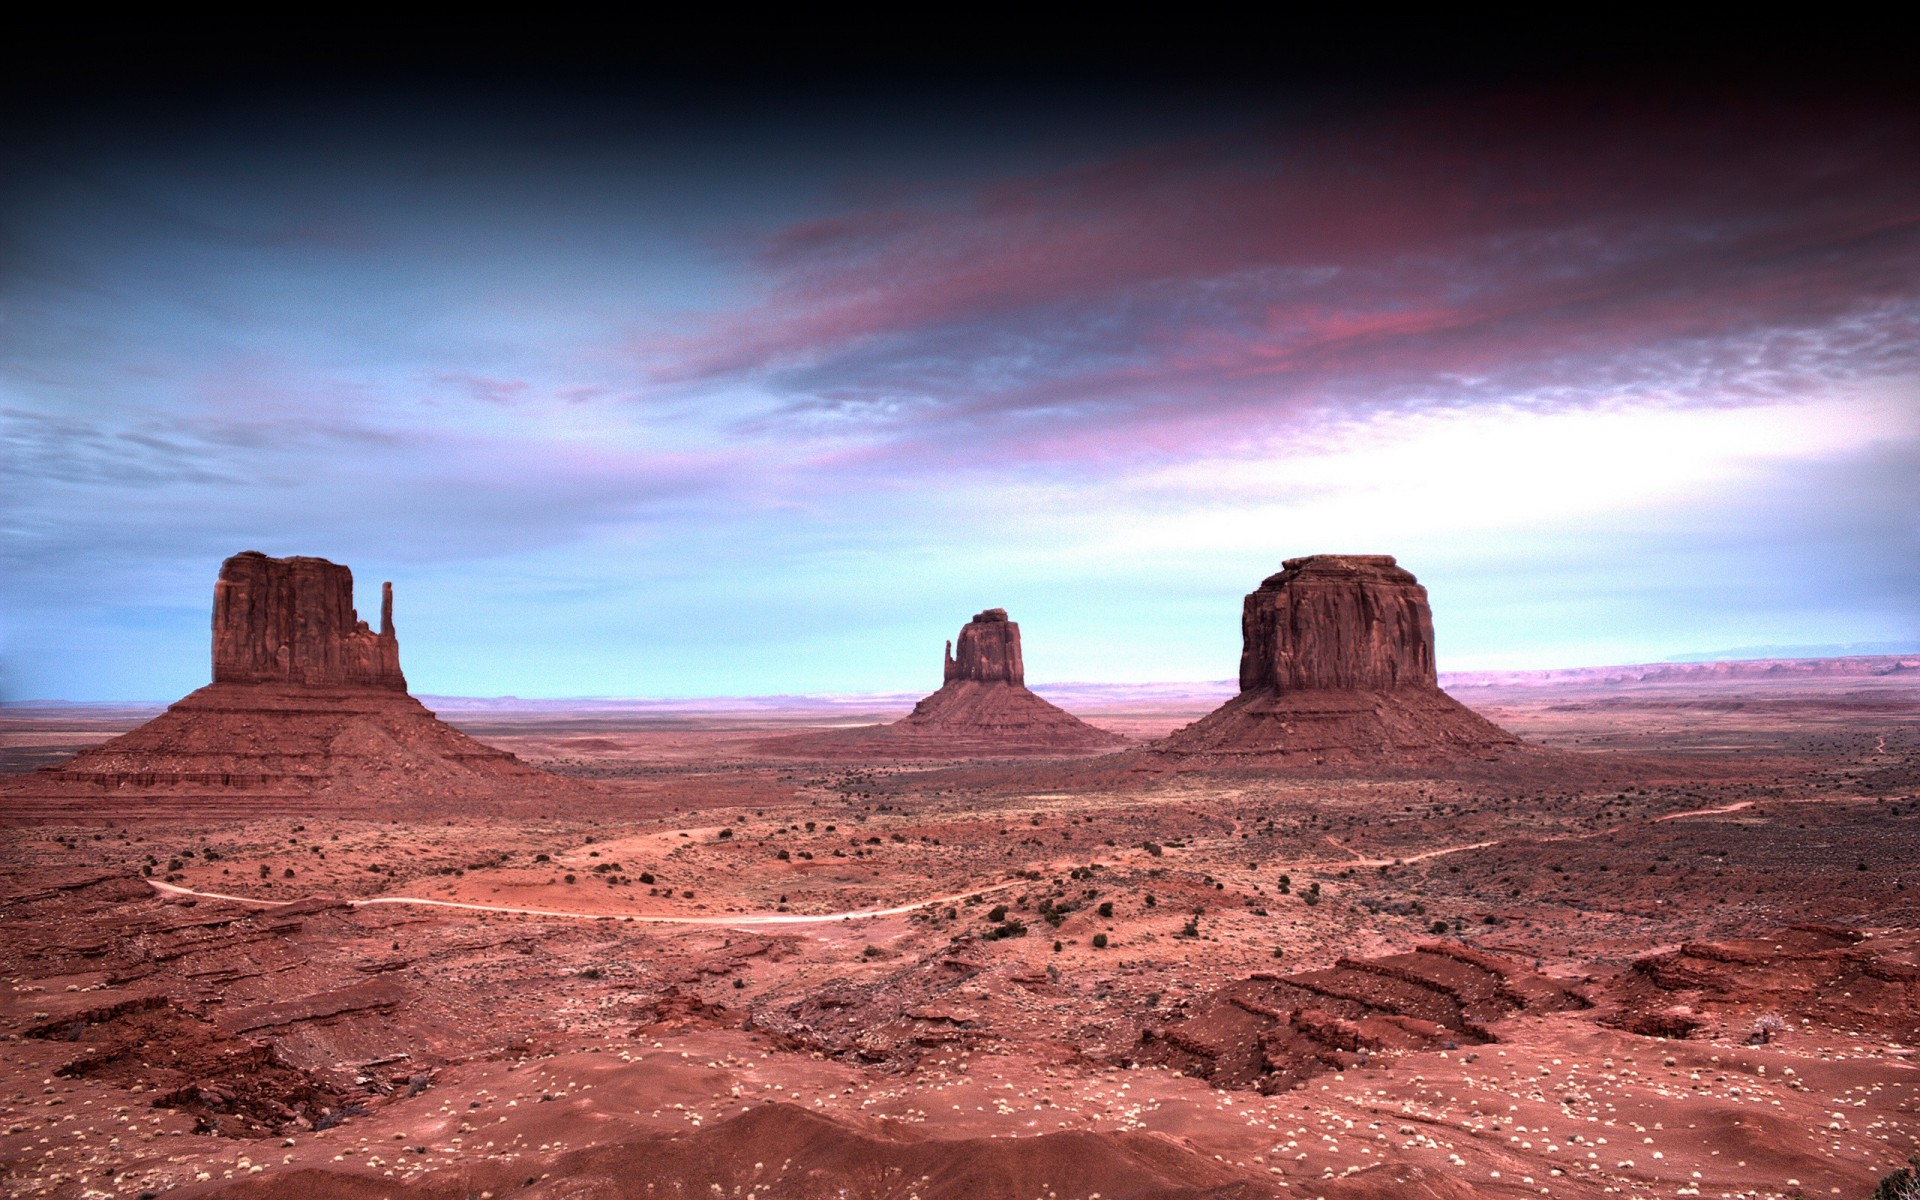 Arizona saloon cactus landscape western hdr f wallpaper 4000x3000 - Landscapes Desert Arizona Monument Valley Rock Formations Wallpaper